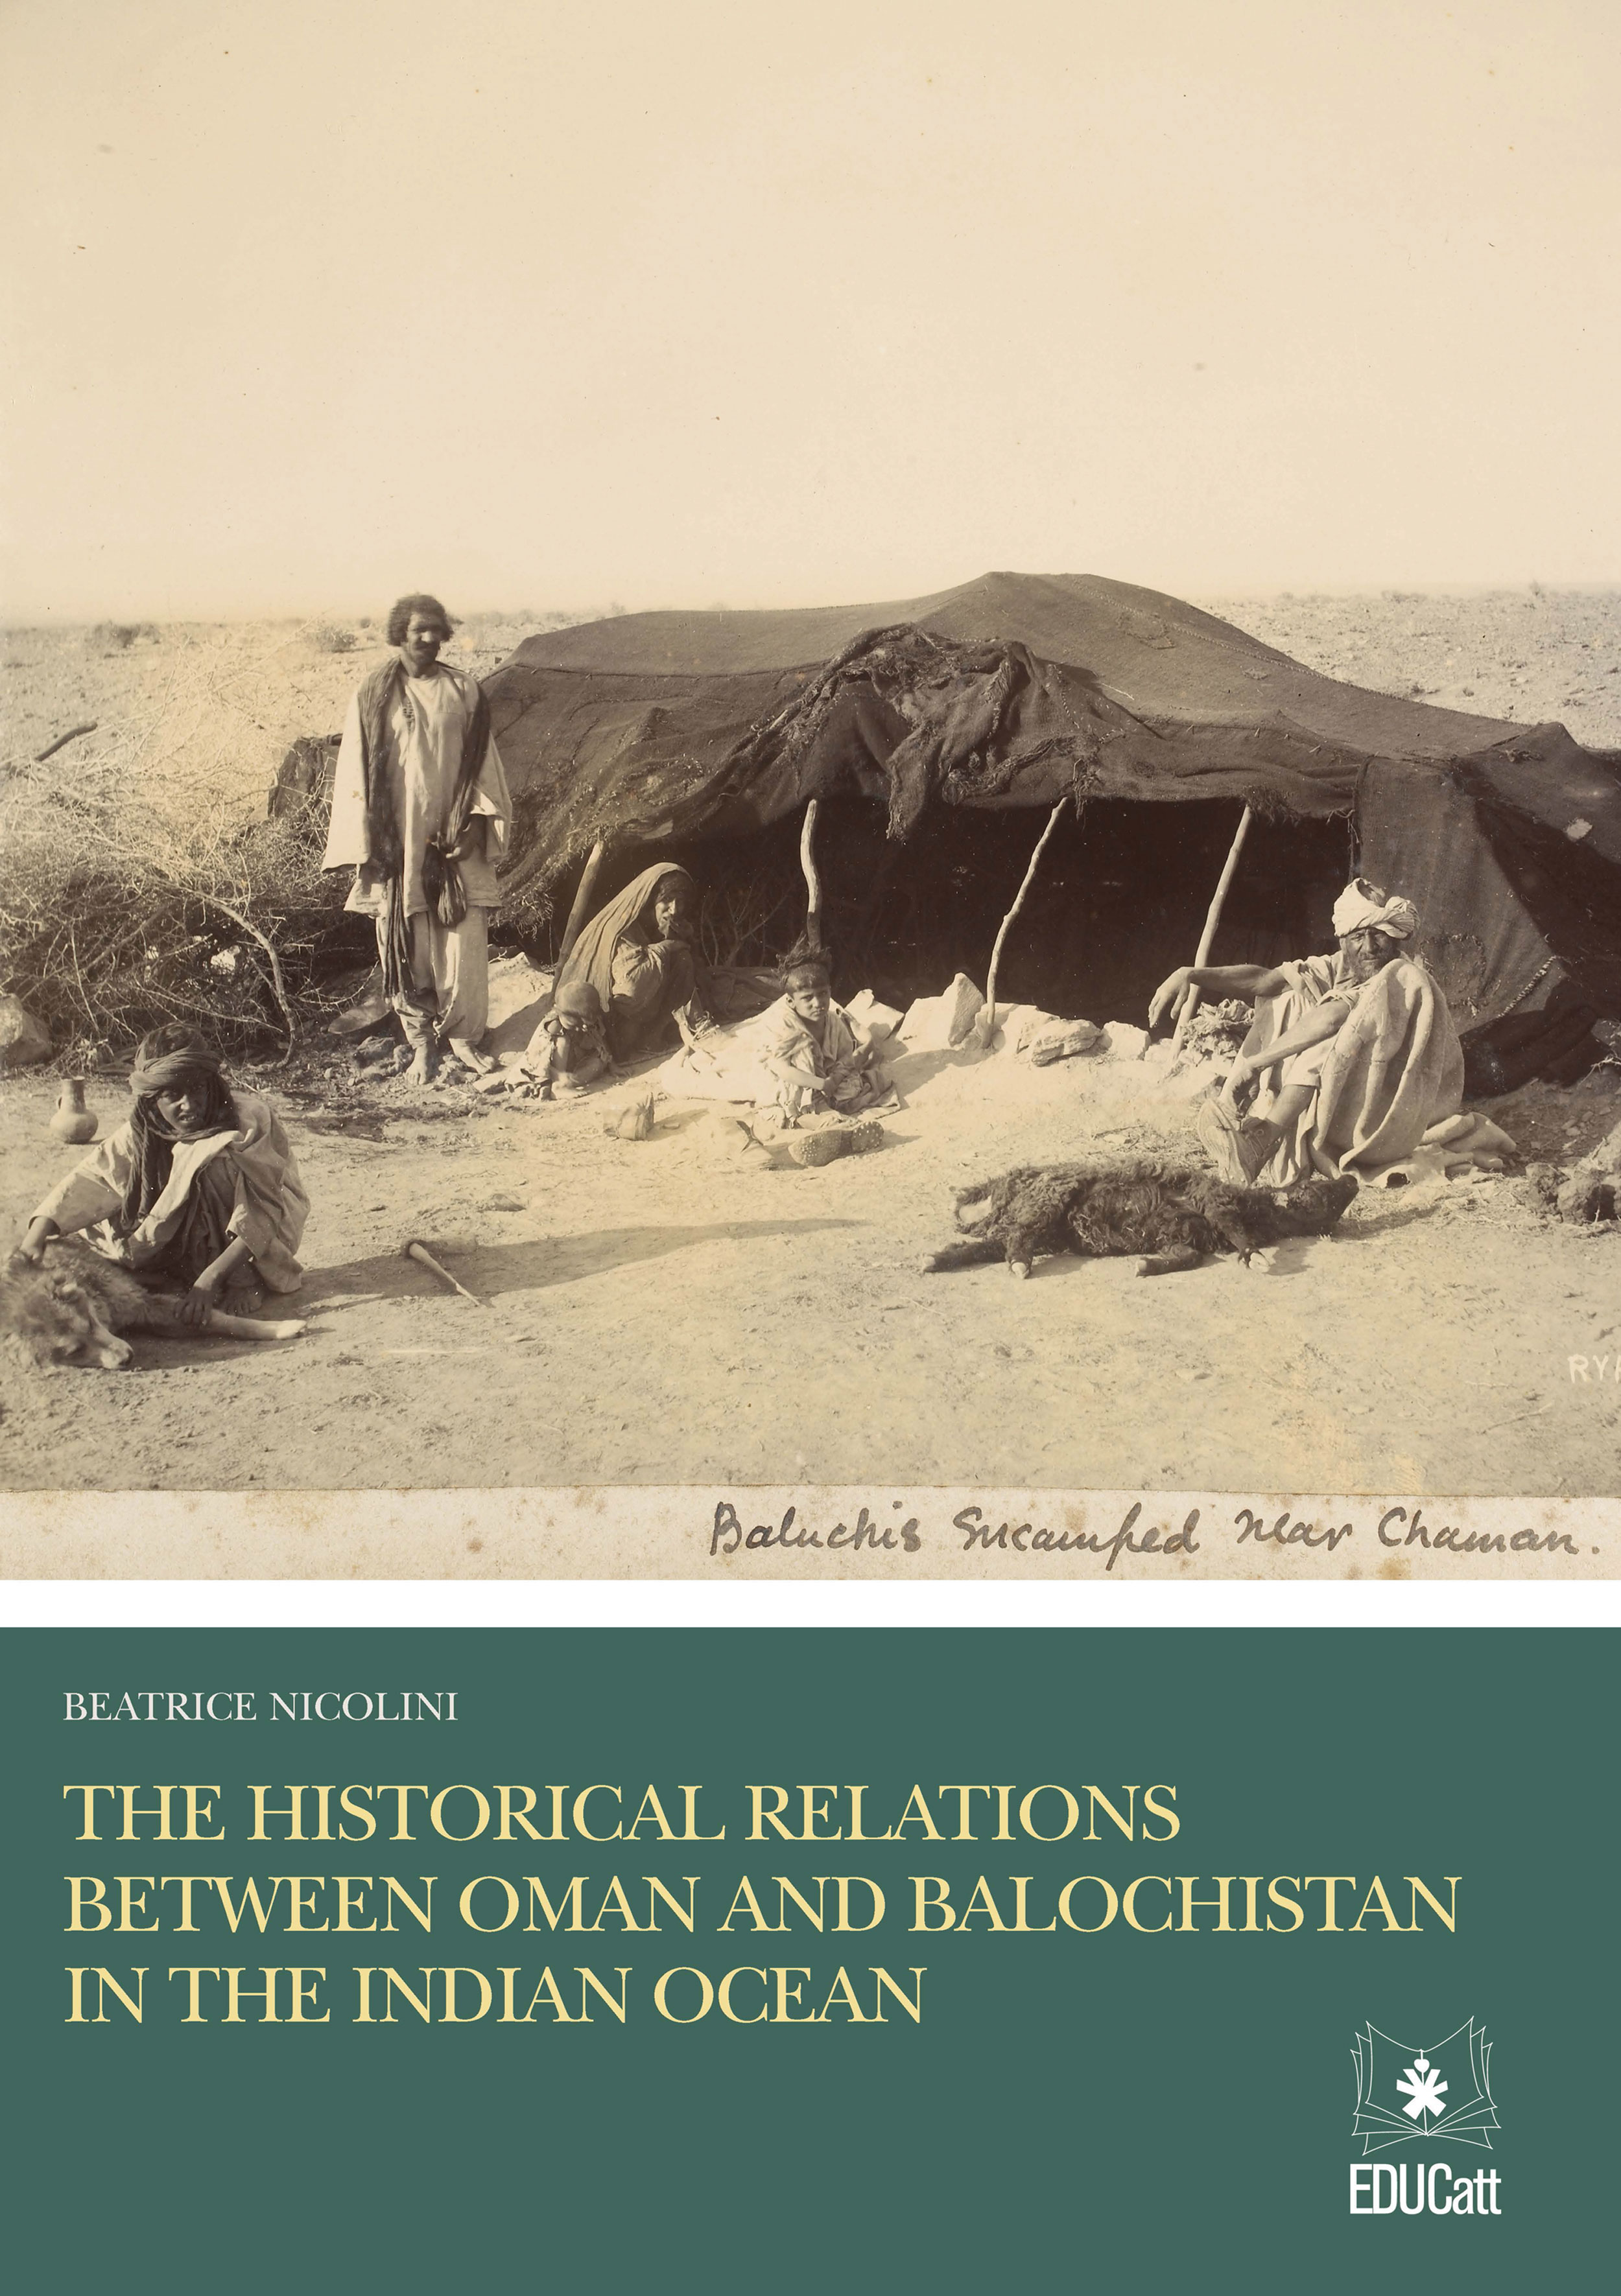 THE HISTORICAL RELATIONS BETWEEN OMAN AND BALOCHISTAN IN THE INDIAN OCEAN